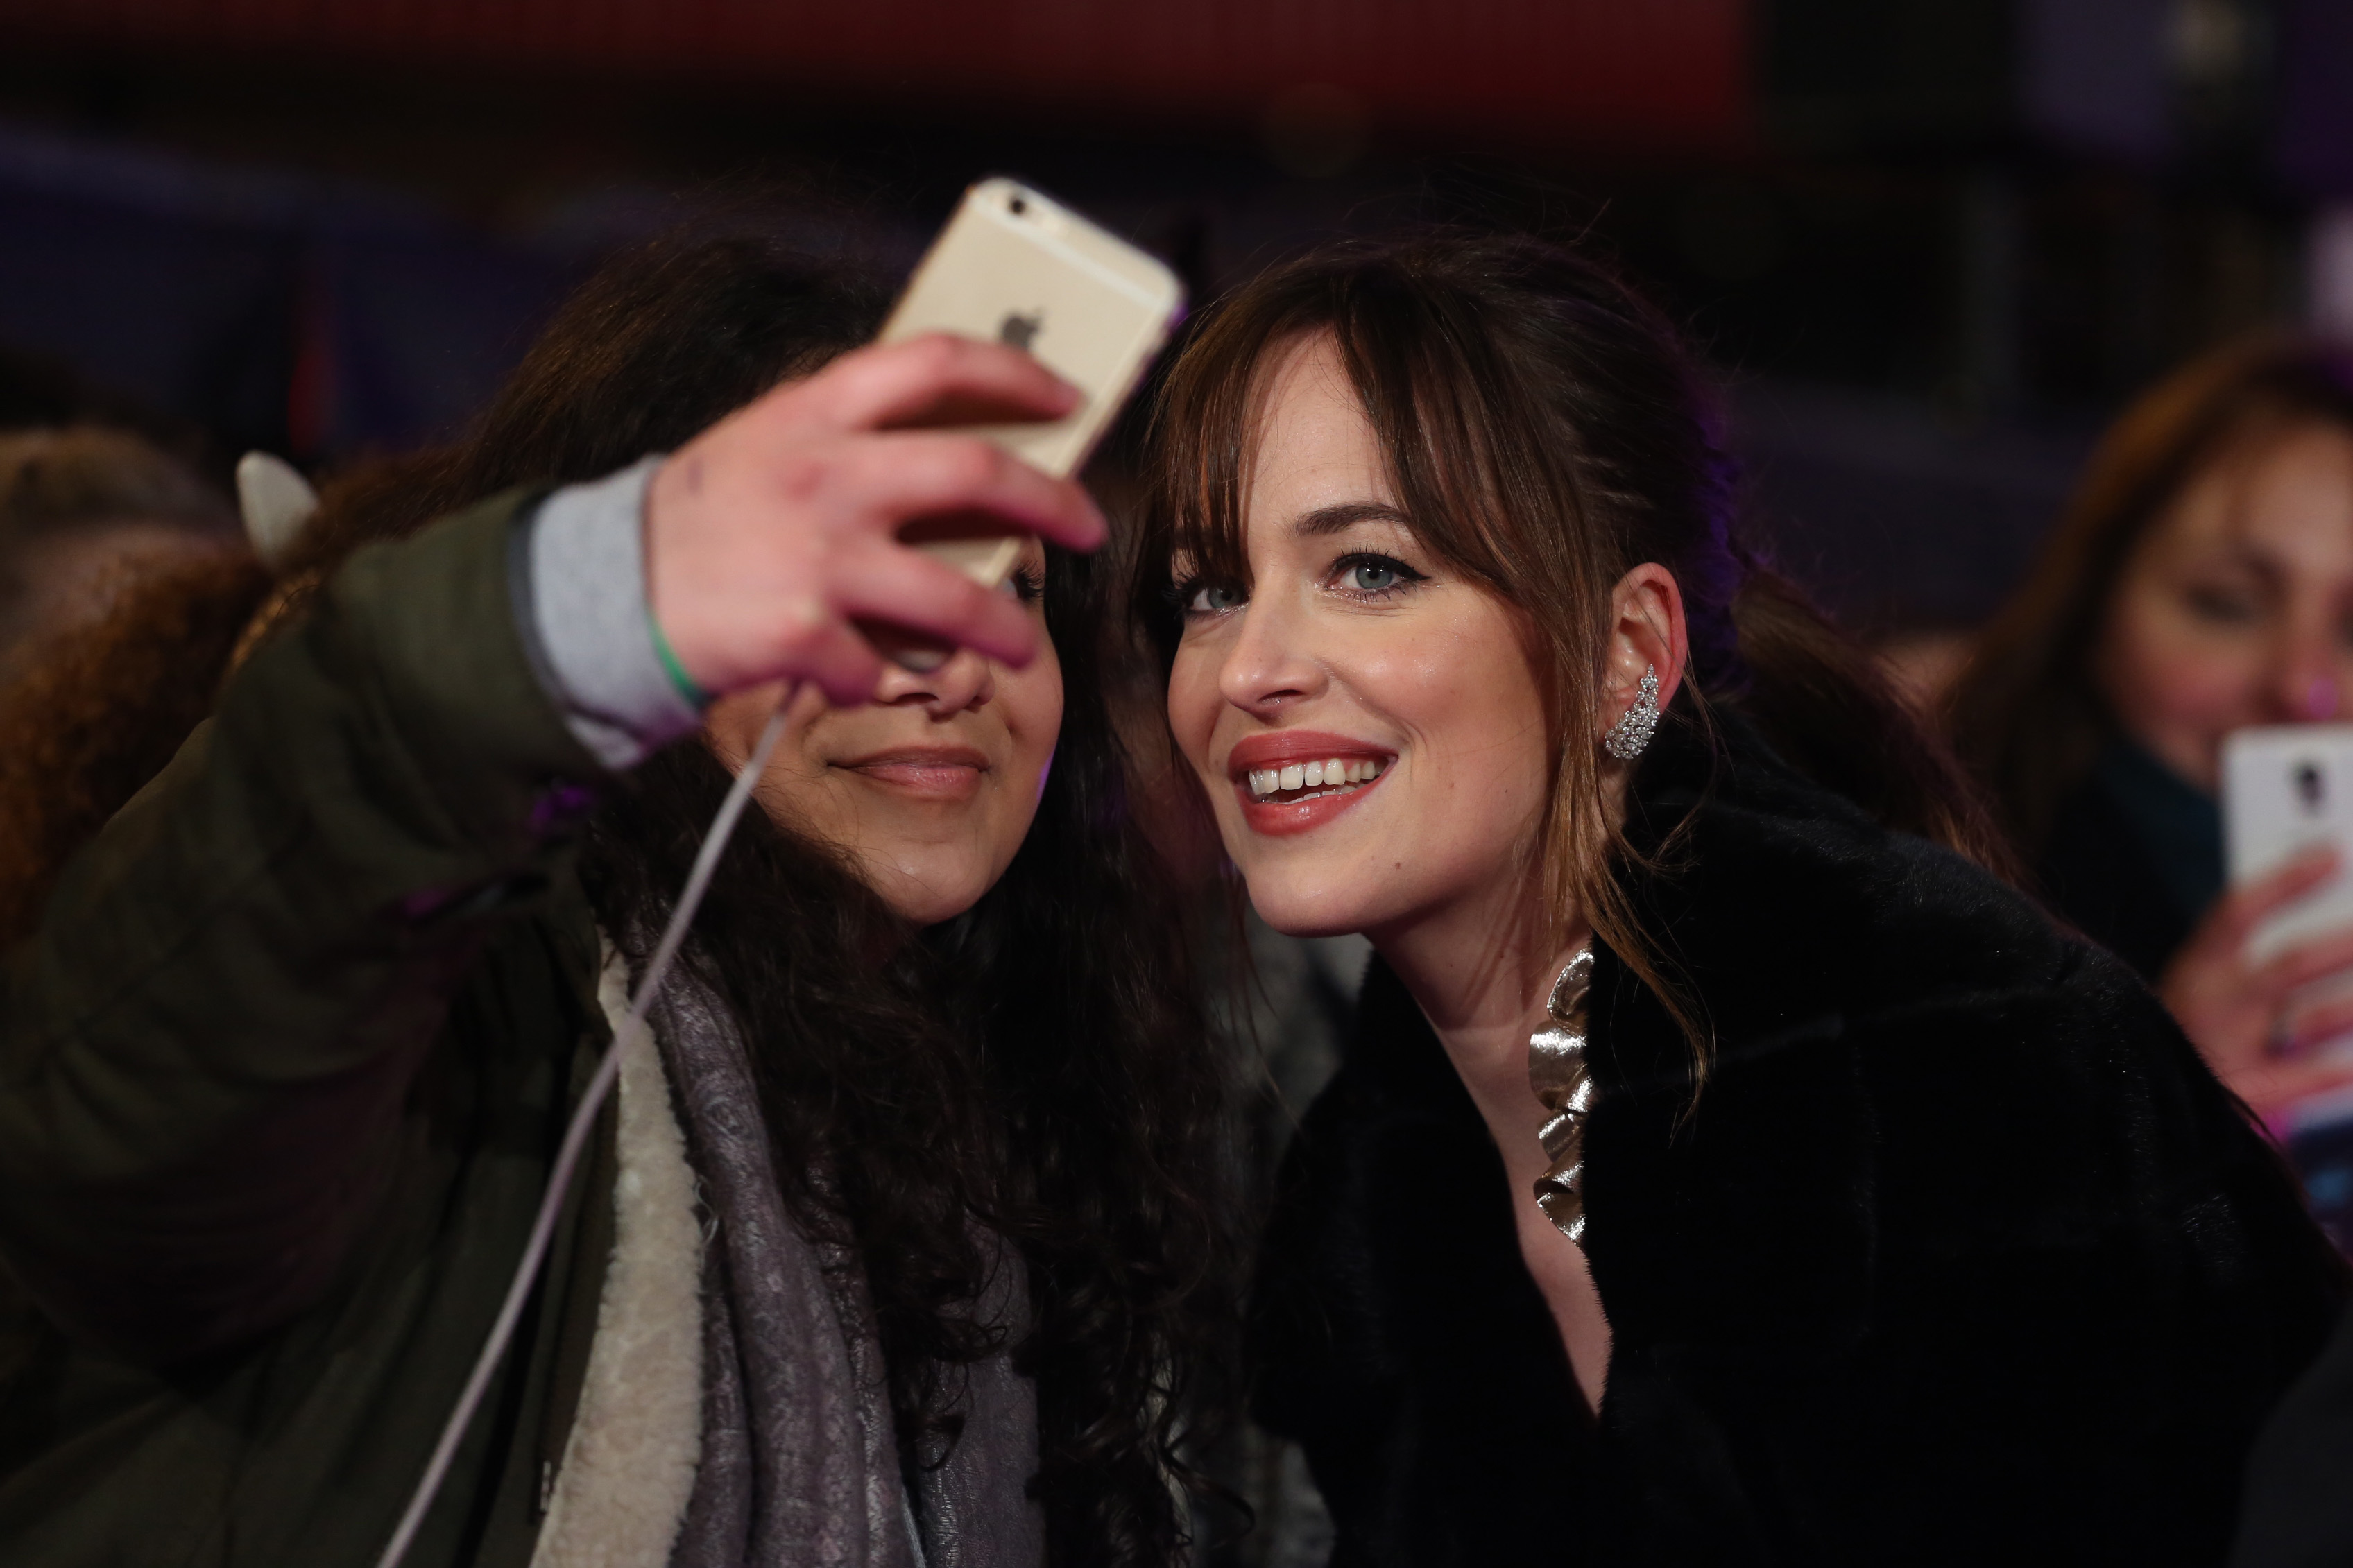 How To Be Single European Premiere Held At The Vue Cinema  Arrivals  Featuring: Dakota